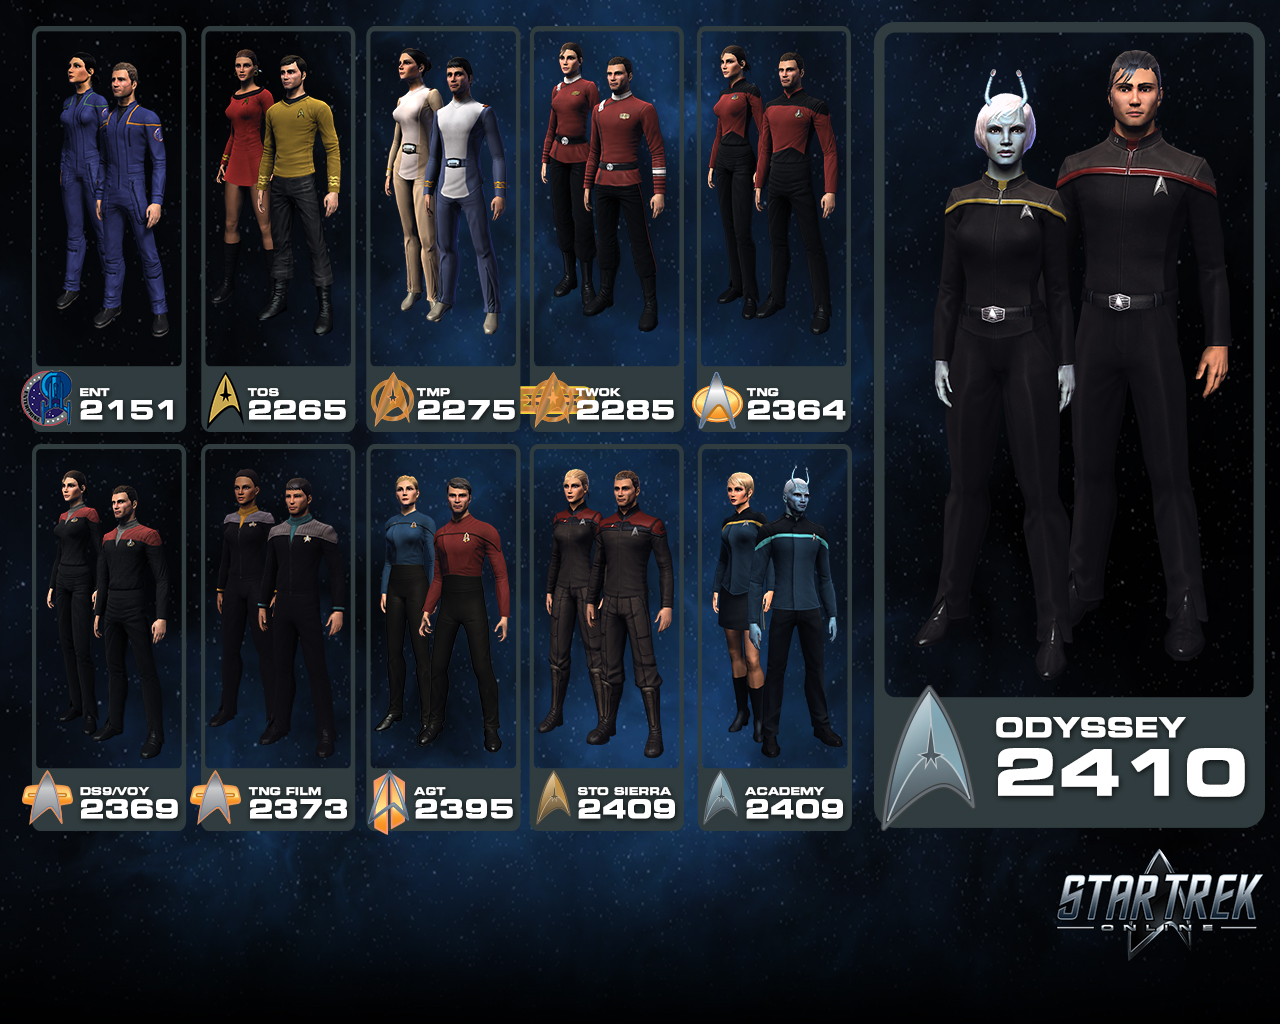 Image Gallery starfleet uniforms 2410